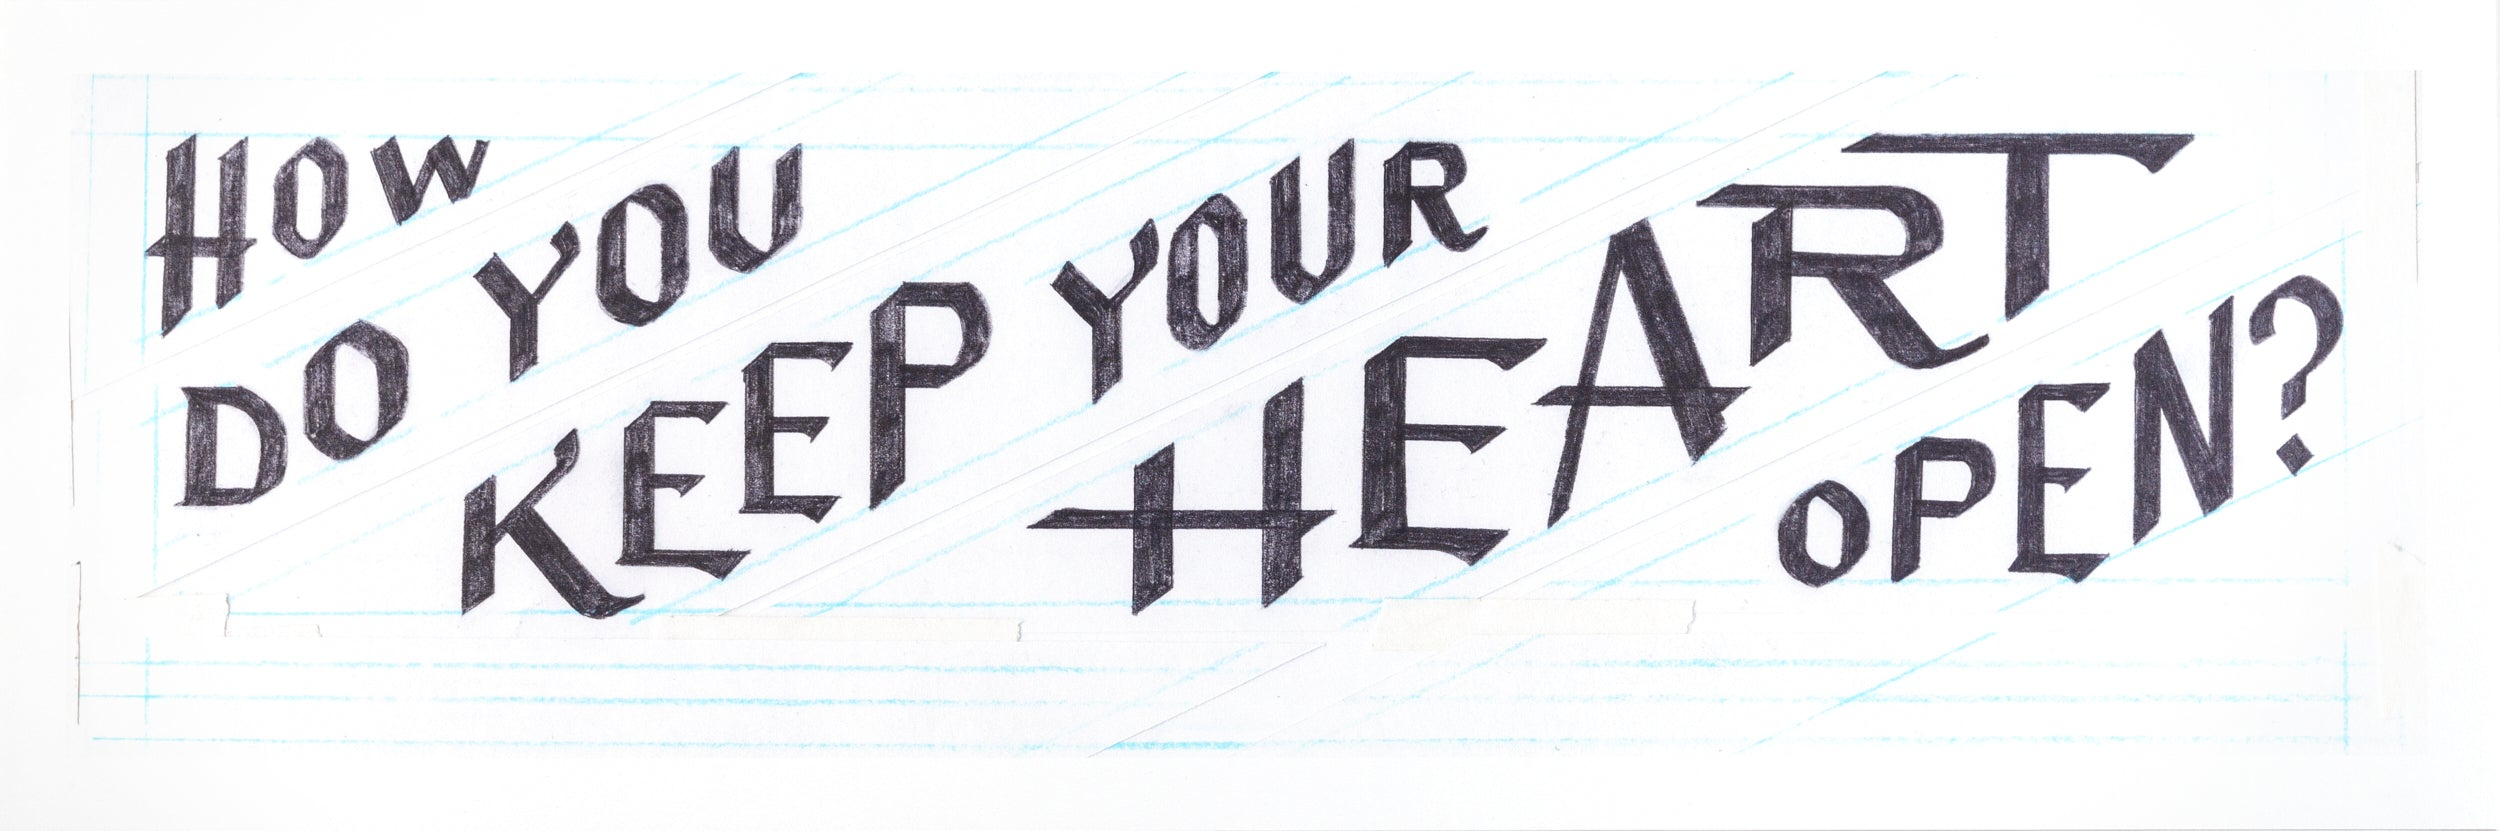 How Do You Keep Your Heart Open? (For Susan)